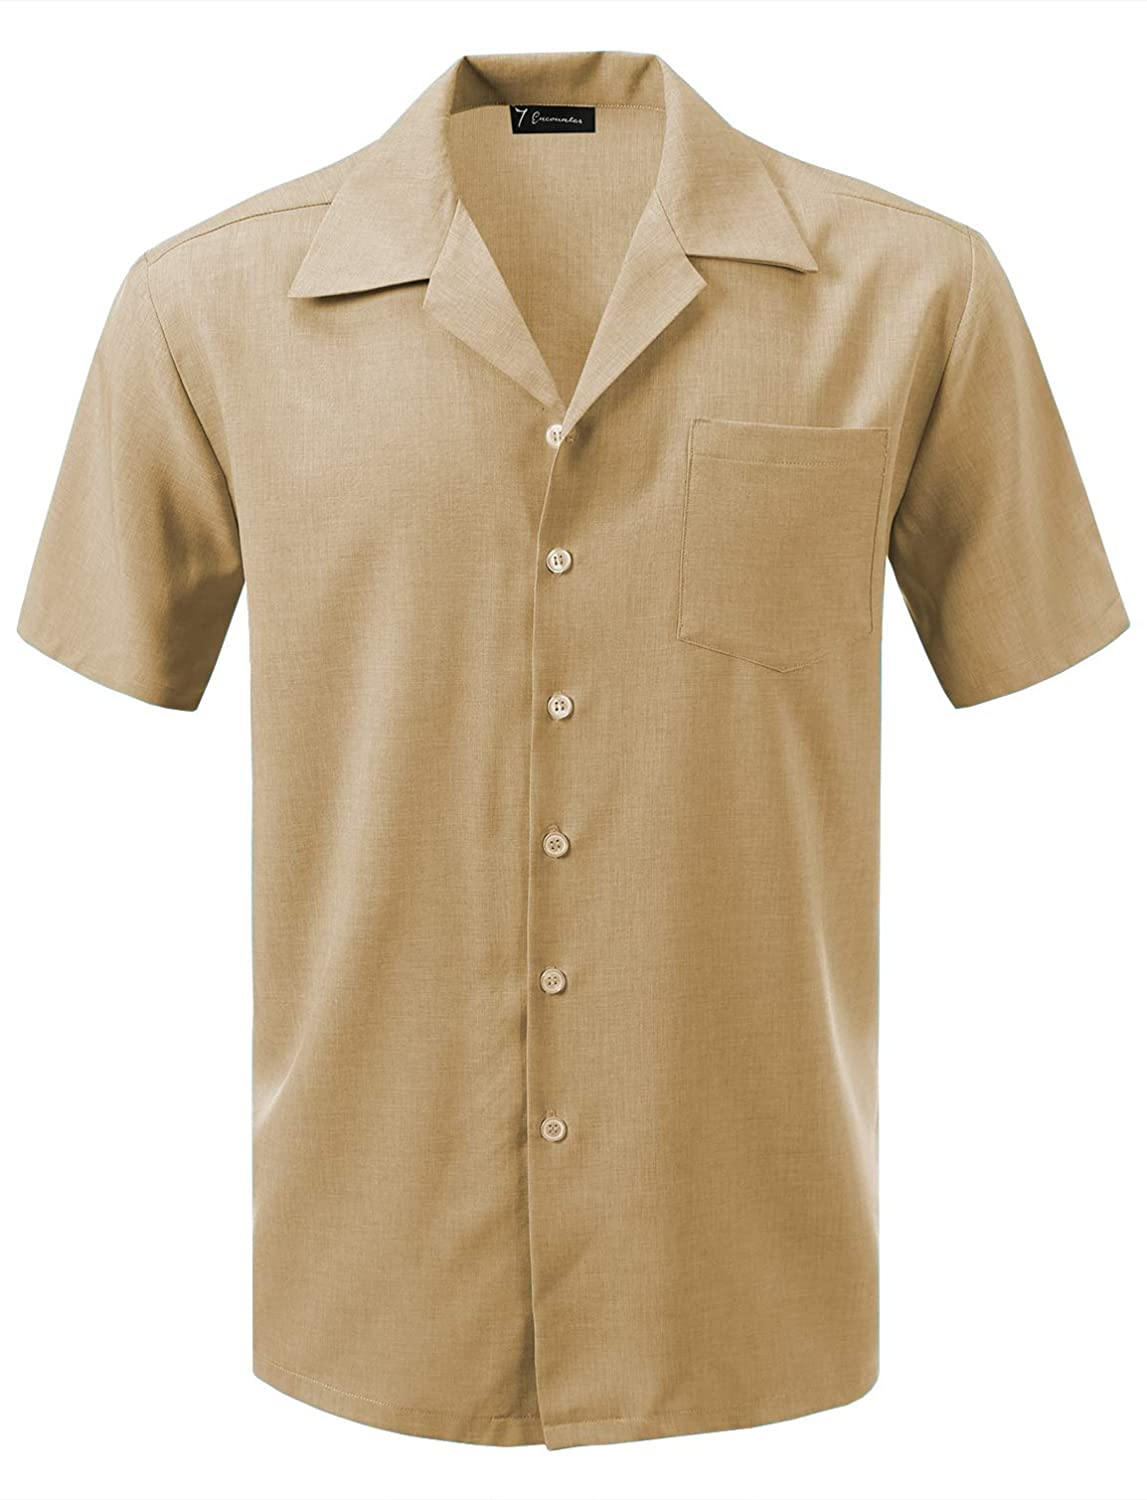 1940s Men's Shirts, Sweaters, Vests 7 Encounter Mens Camp Dress Shirt $29.99 AT vintagedancer.com